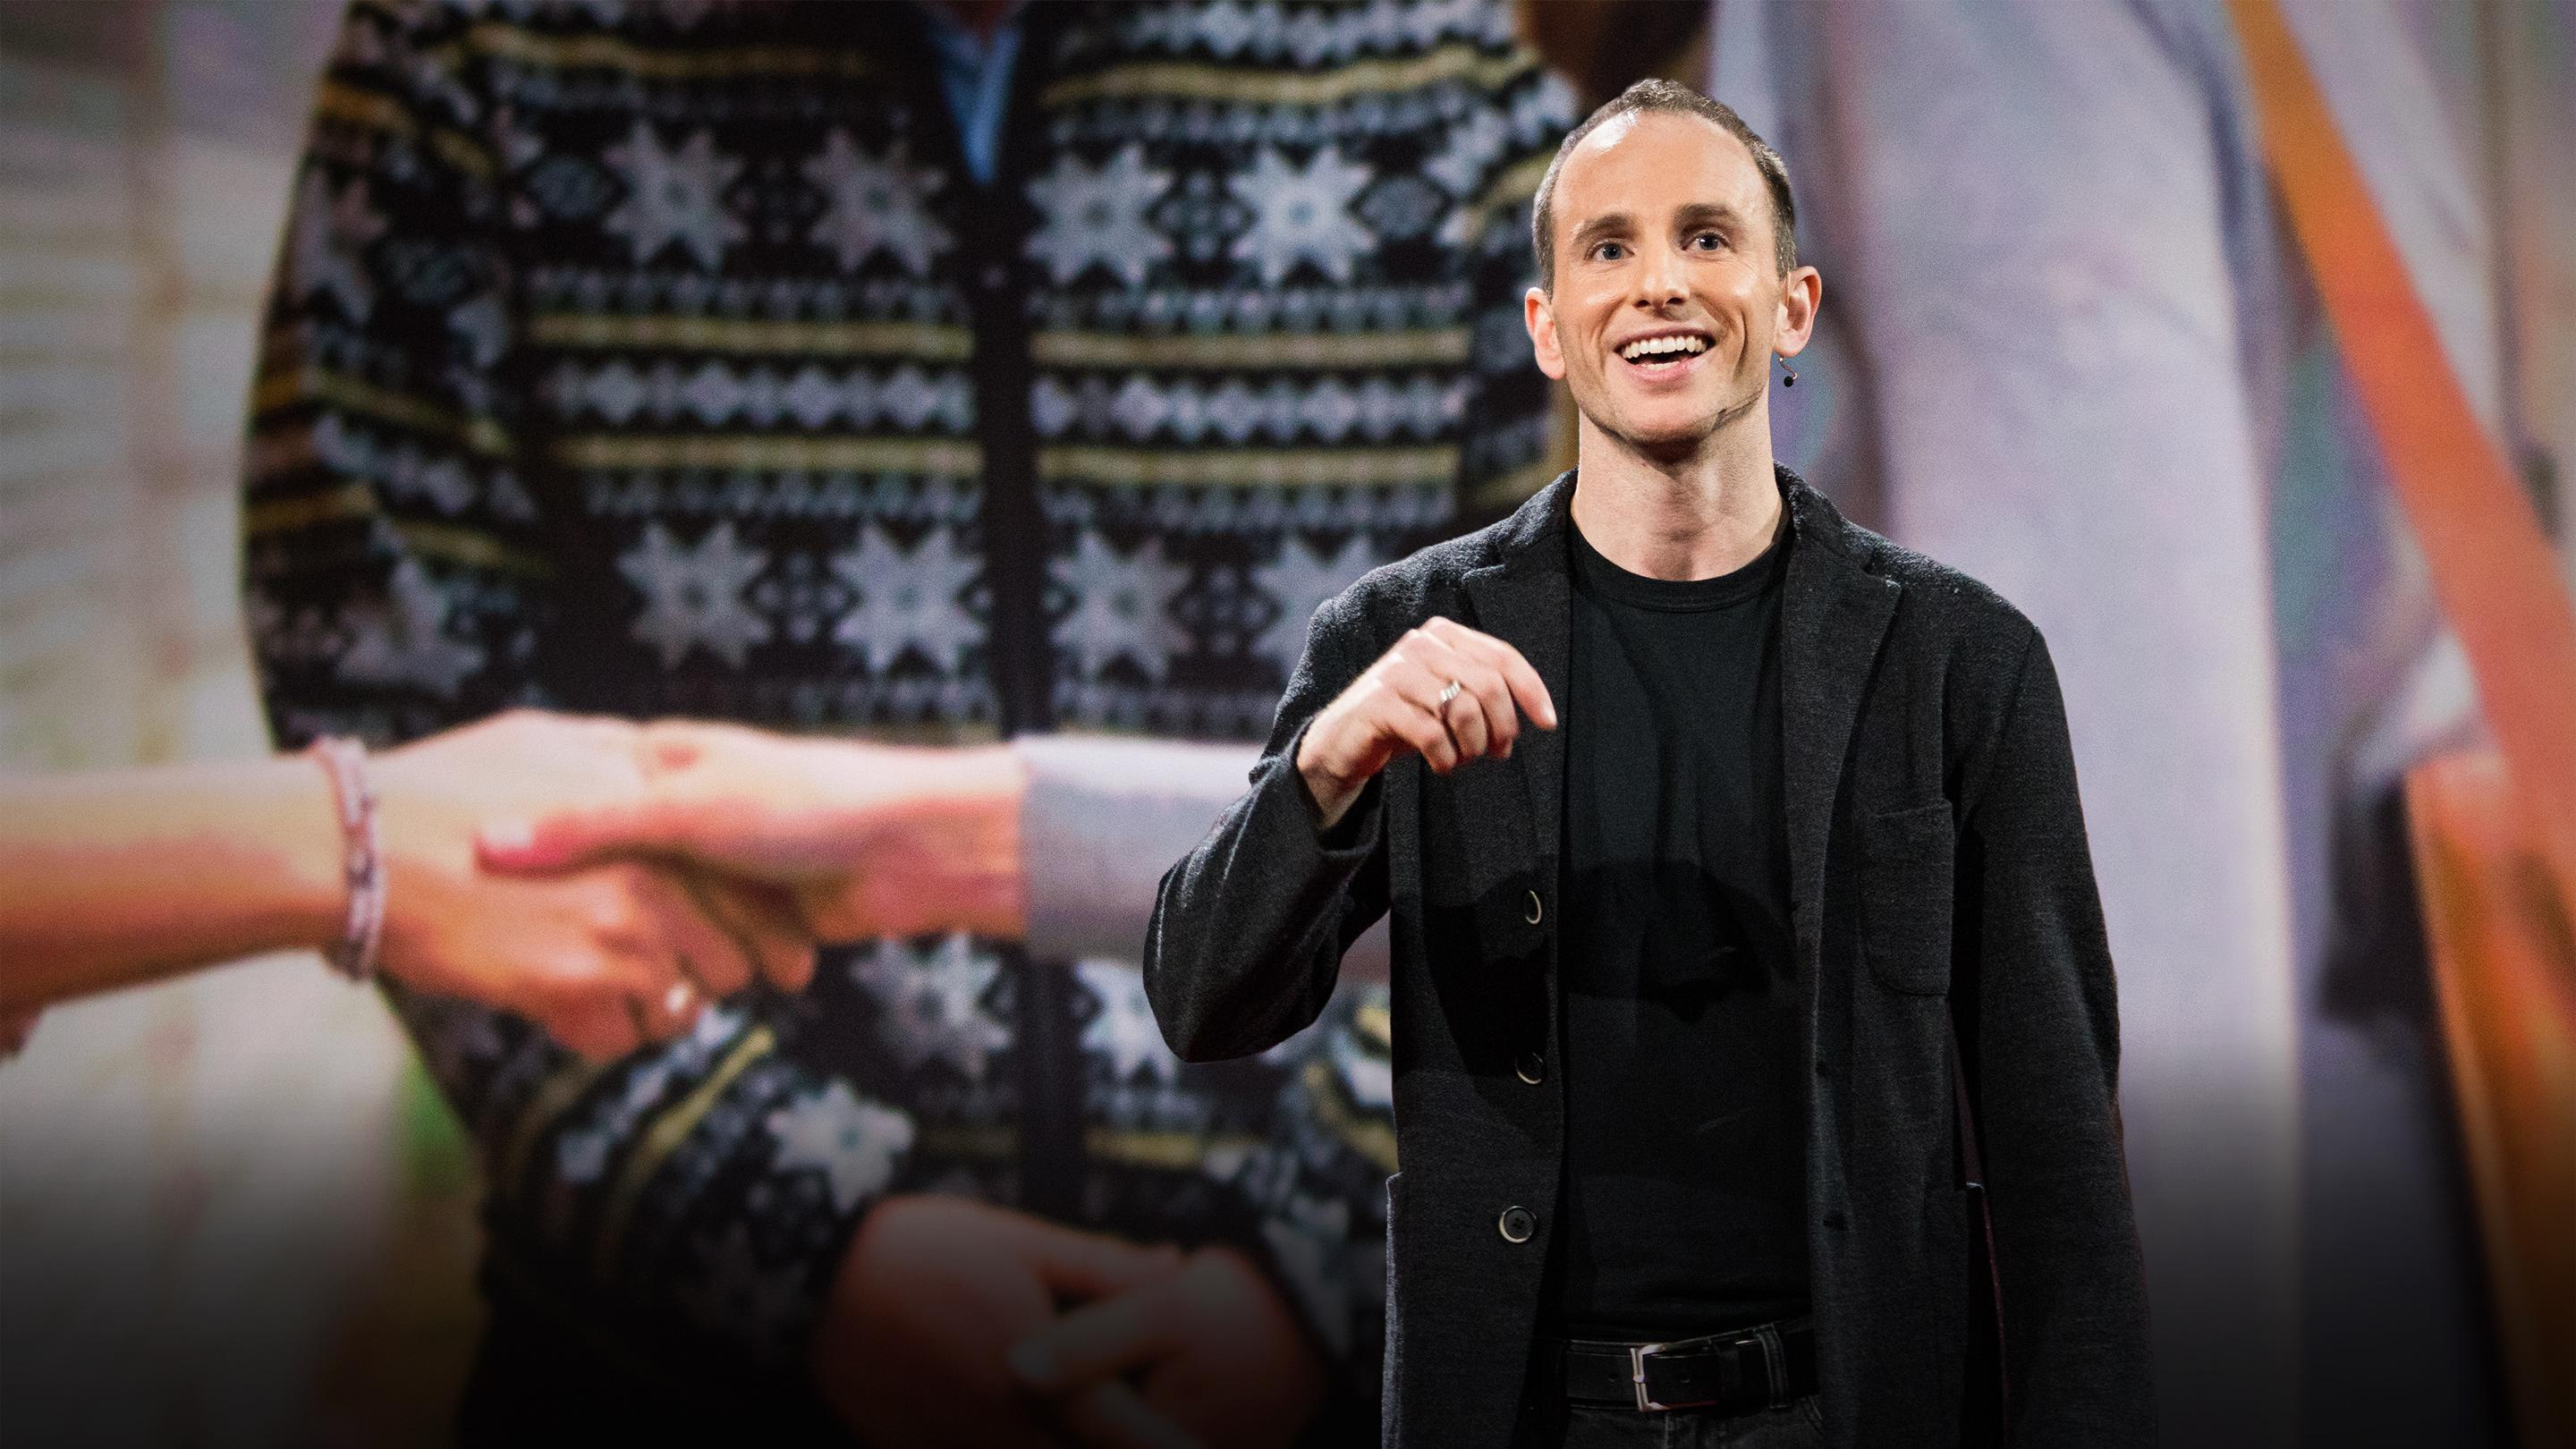 TED Talk - How Airbnb designs for trust